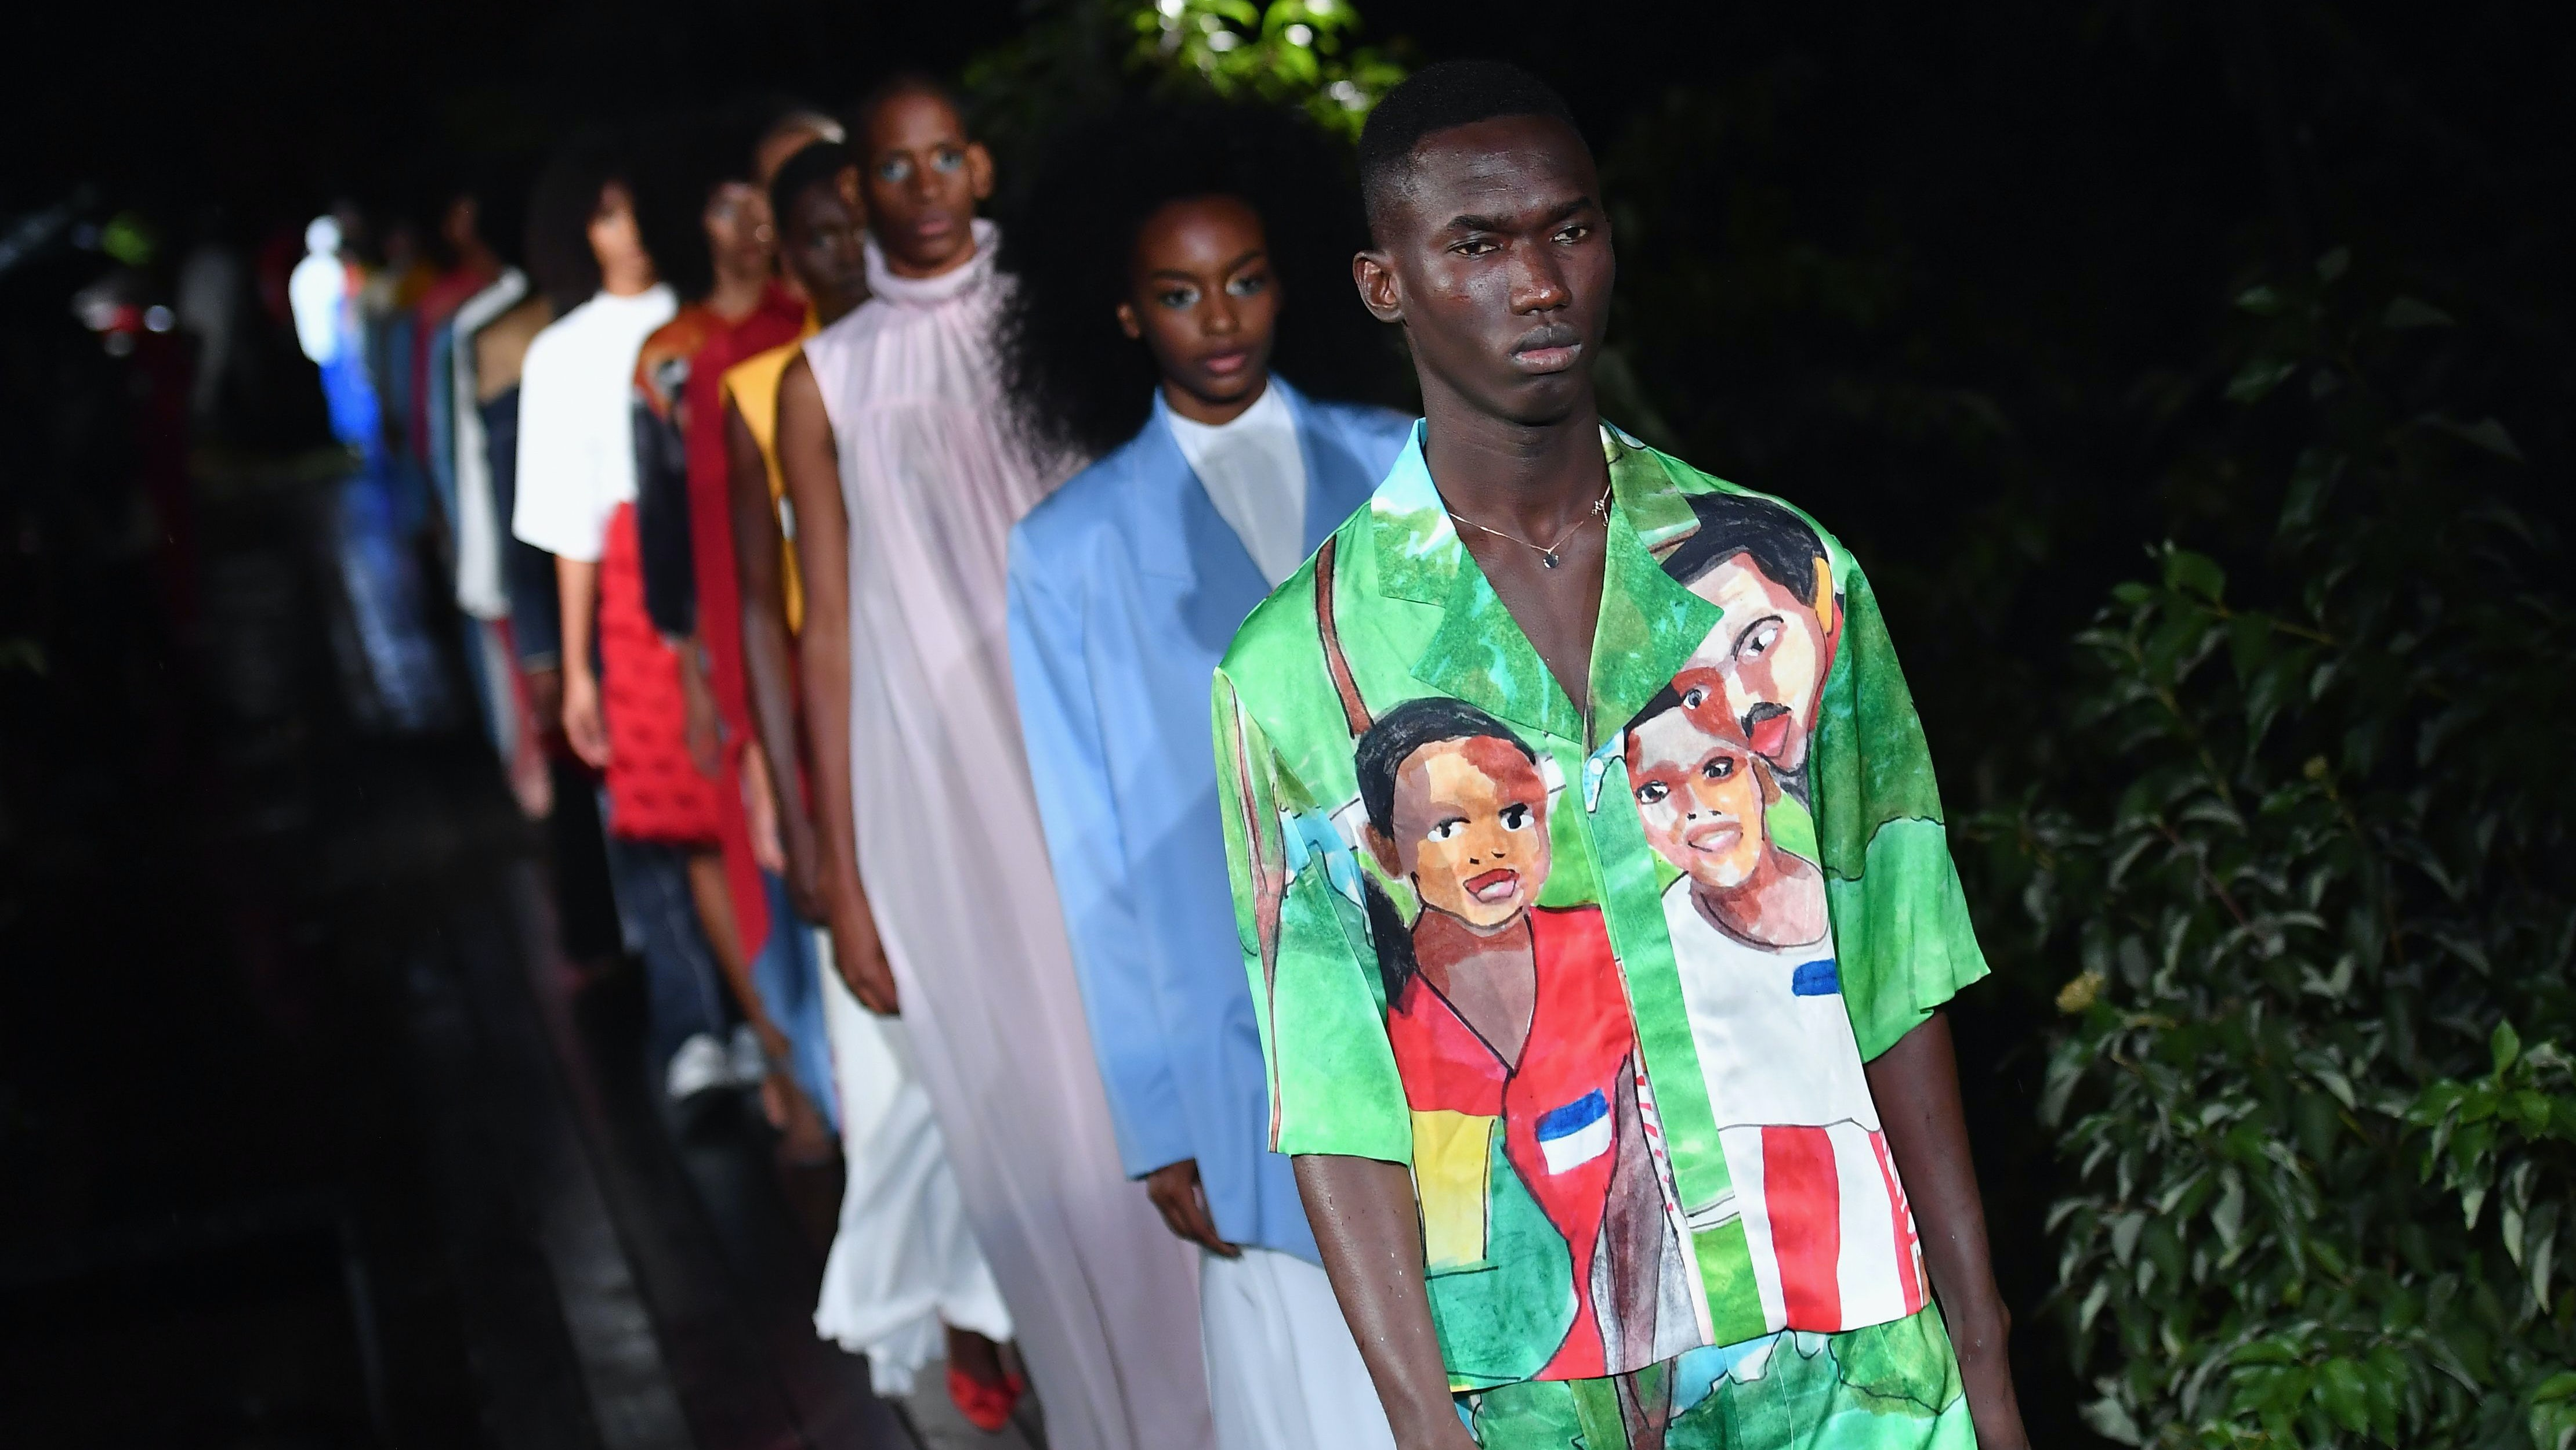 Pyer Moss Spring Summer 2019 | Source: Angela Weiss/AFP/Getty Images